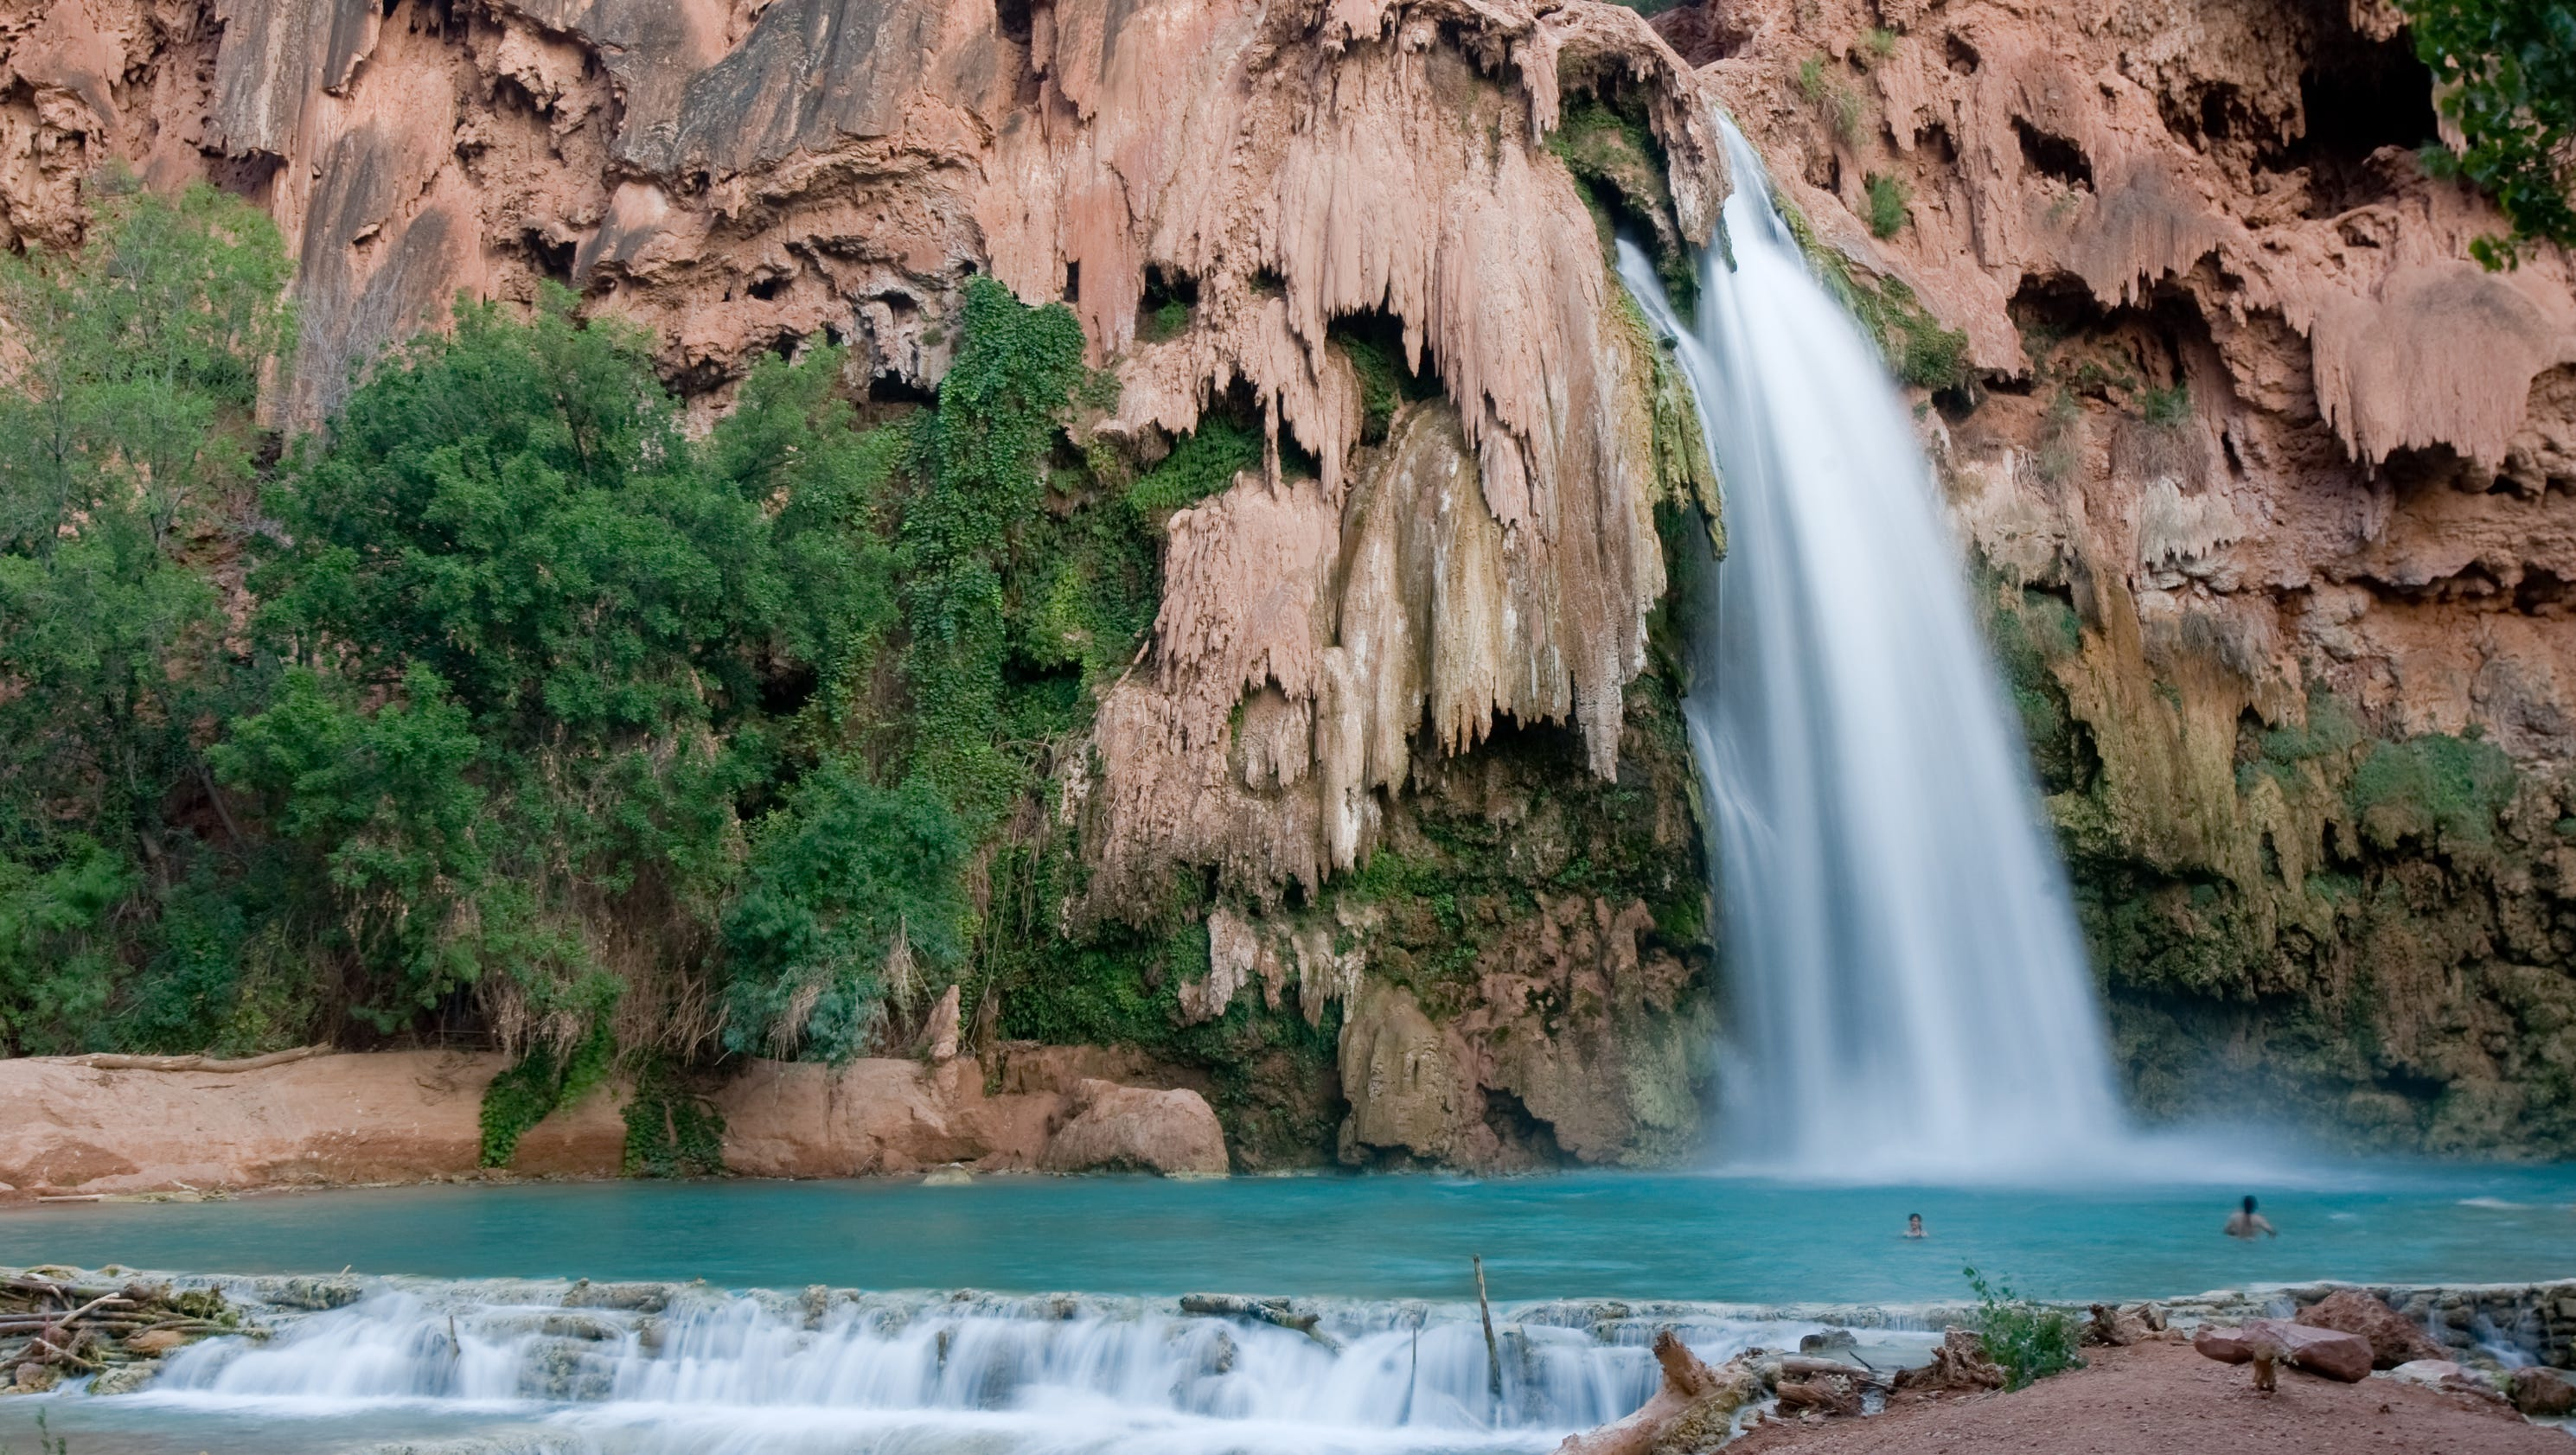 Nearly Impossible Get Permit Havasupai